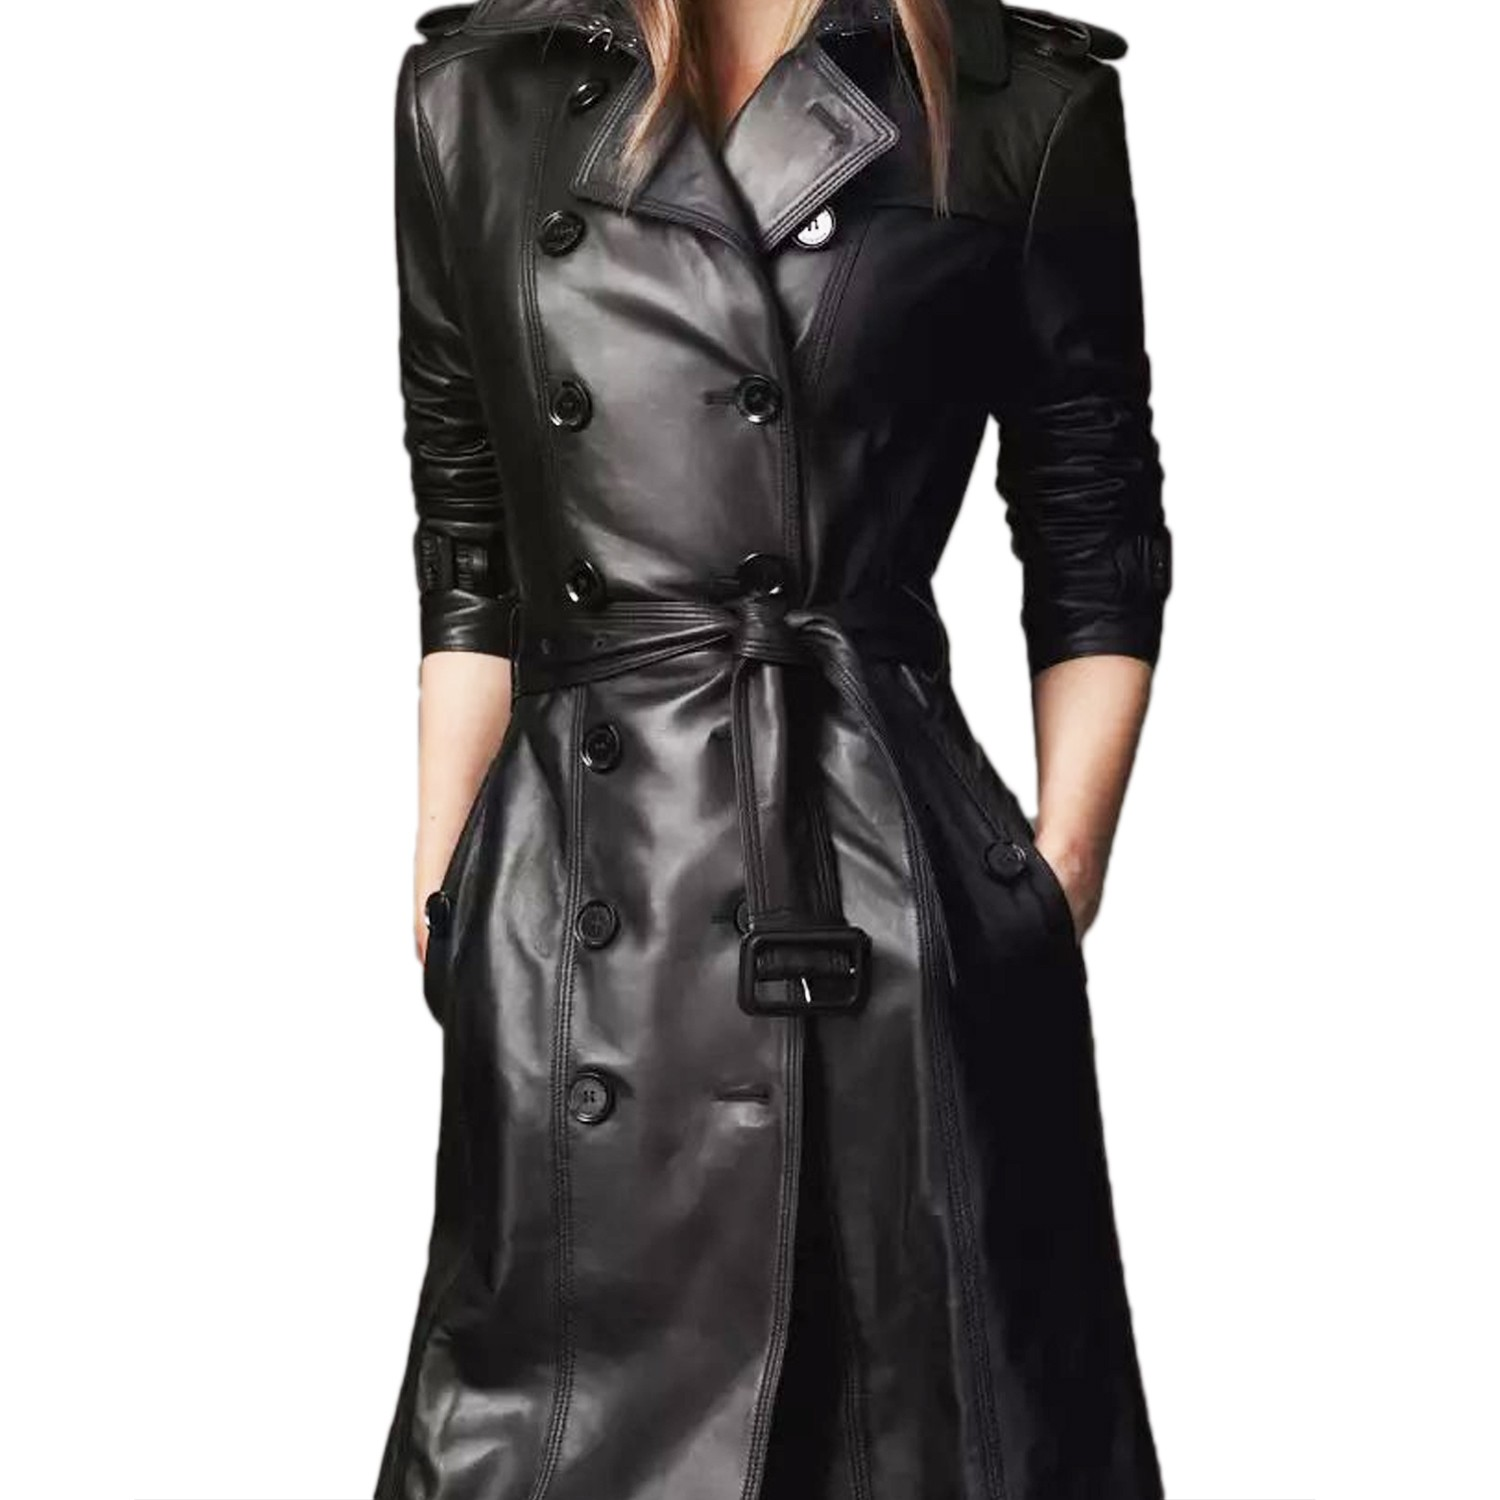 You searched for: women leather trench coats! Etsy is the home to thousands of handmade, vintage, and one-of-a-kind products and gifts related to your search. No matter what you're looking for or where you are in the world, our global marketplace of sellers can help you find unique and affordable options. Let's get started!